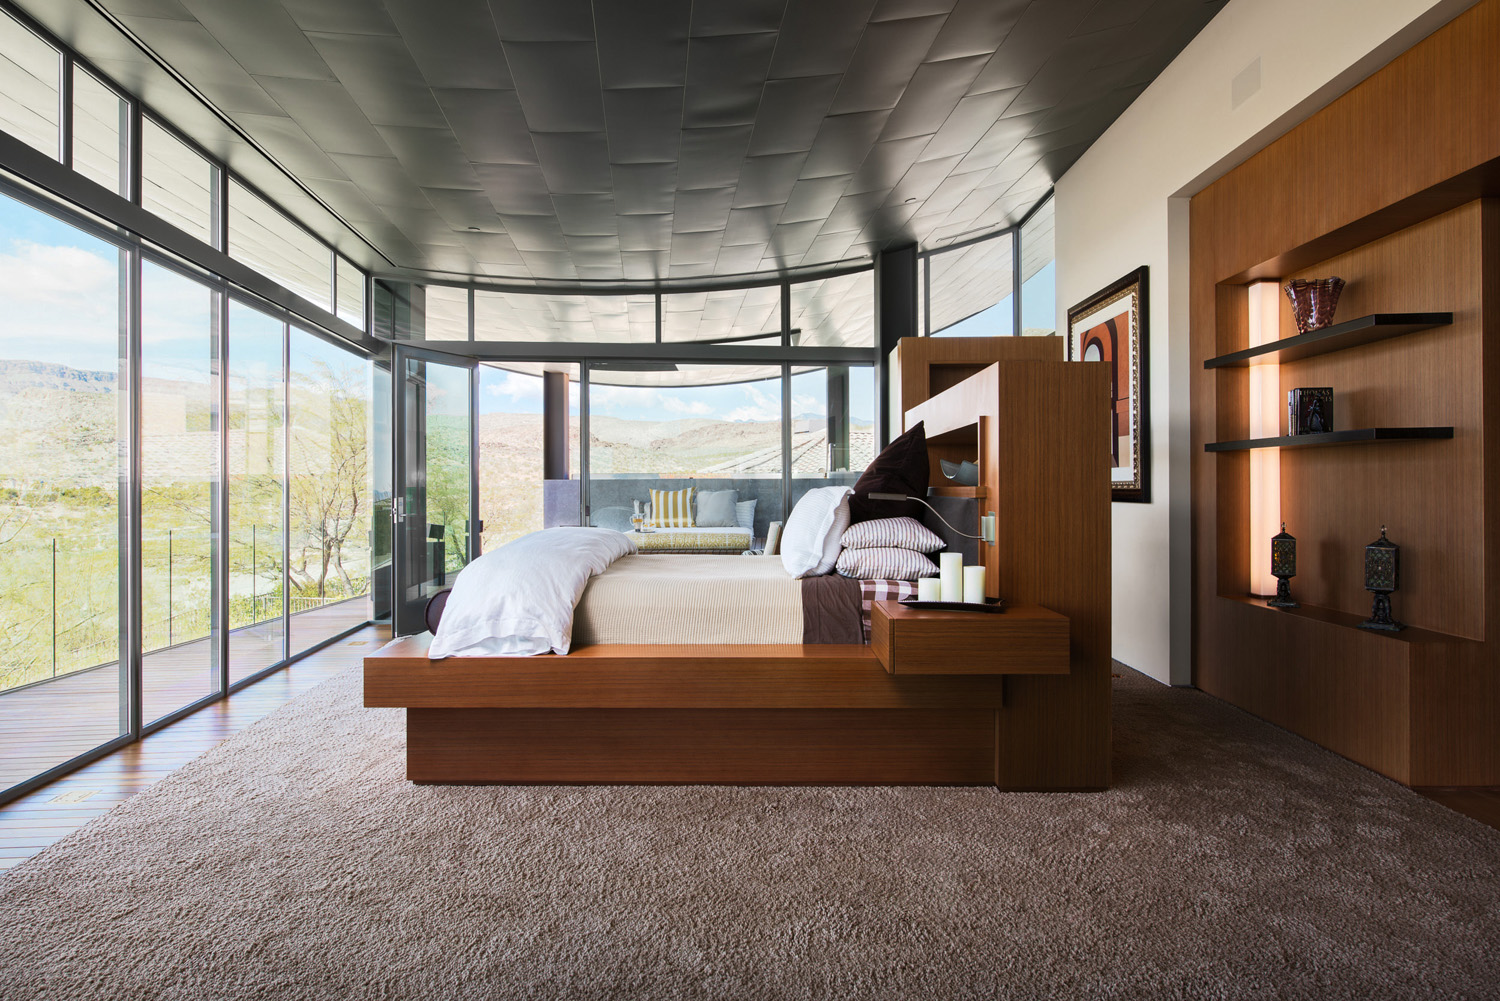 Views of the desert can be enjoyed from the comfort of your bed